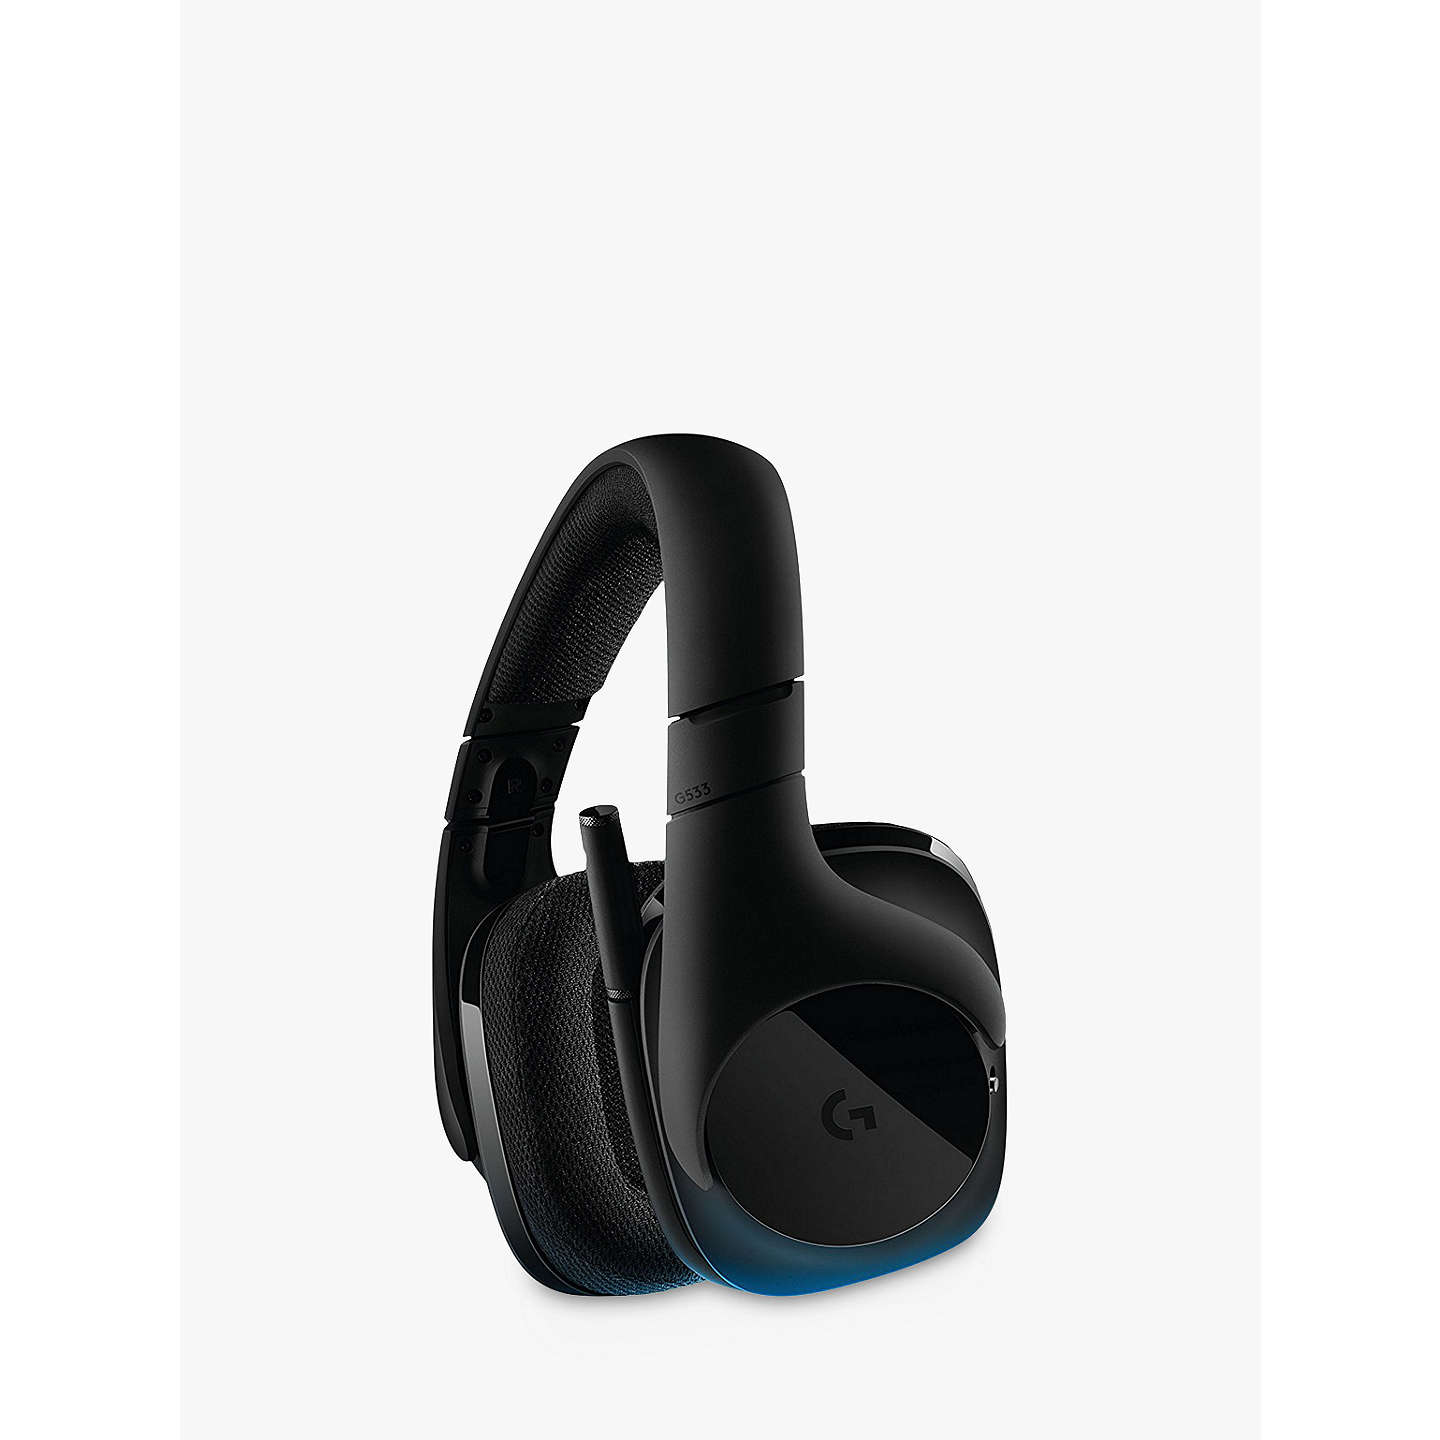 BuyLogitech G533 Wireless Gaming Headset Online at johnlewis.com